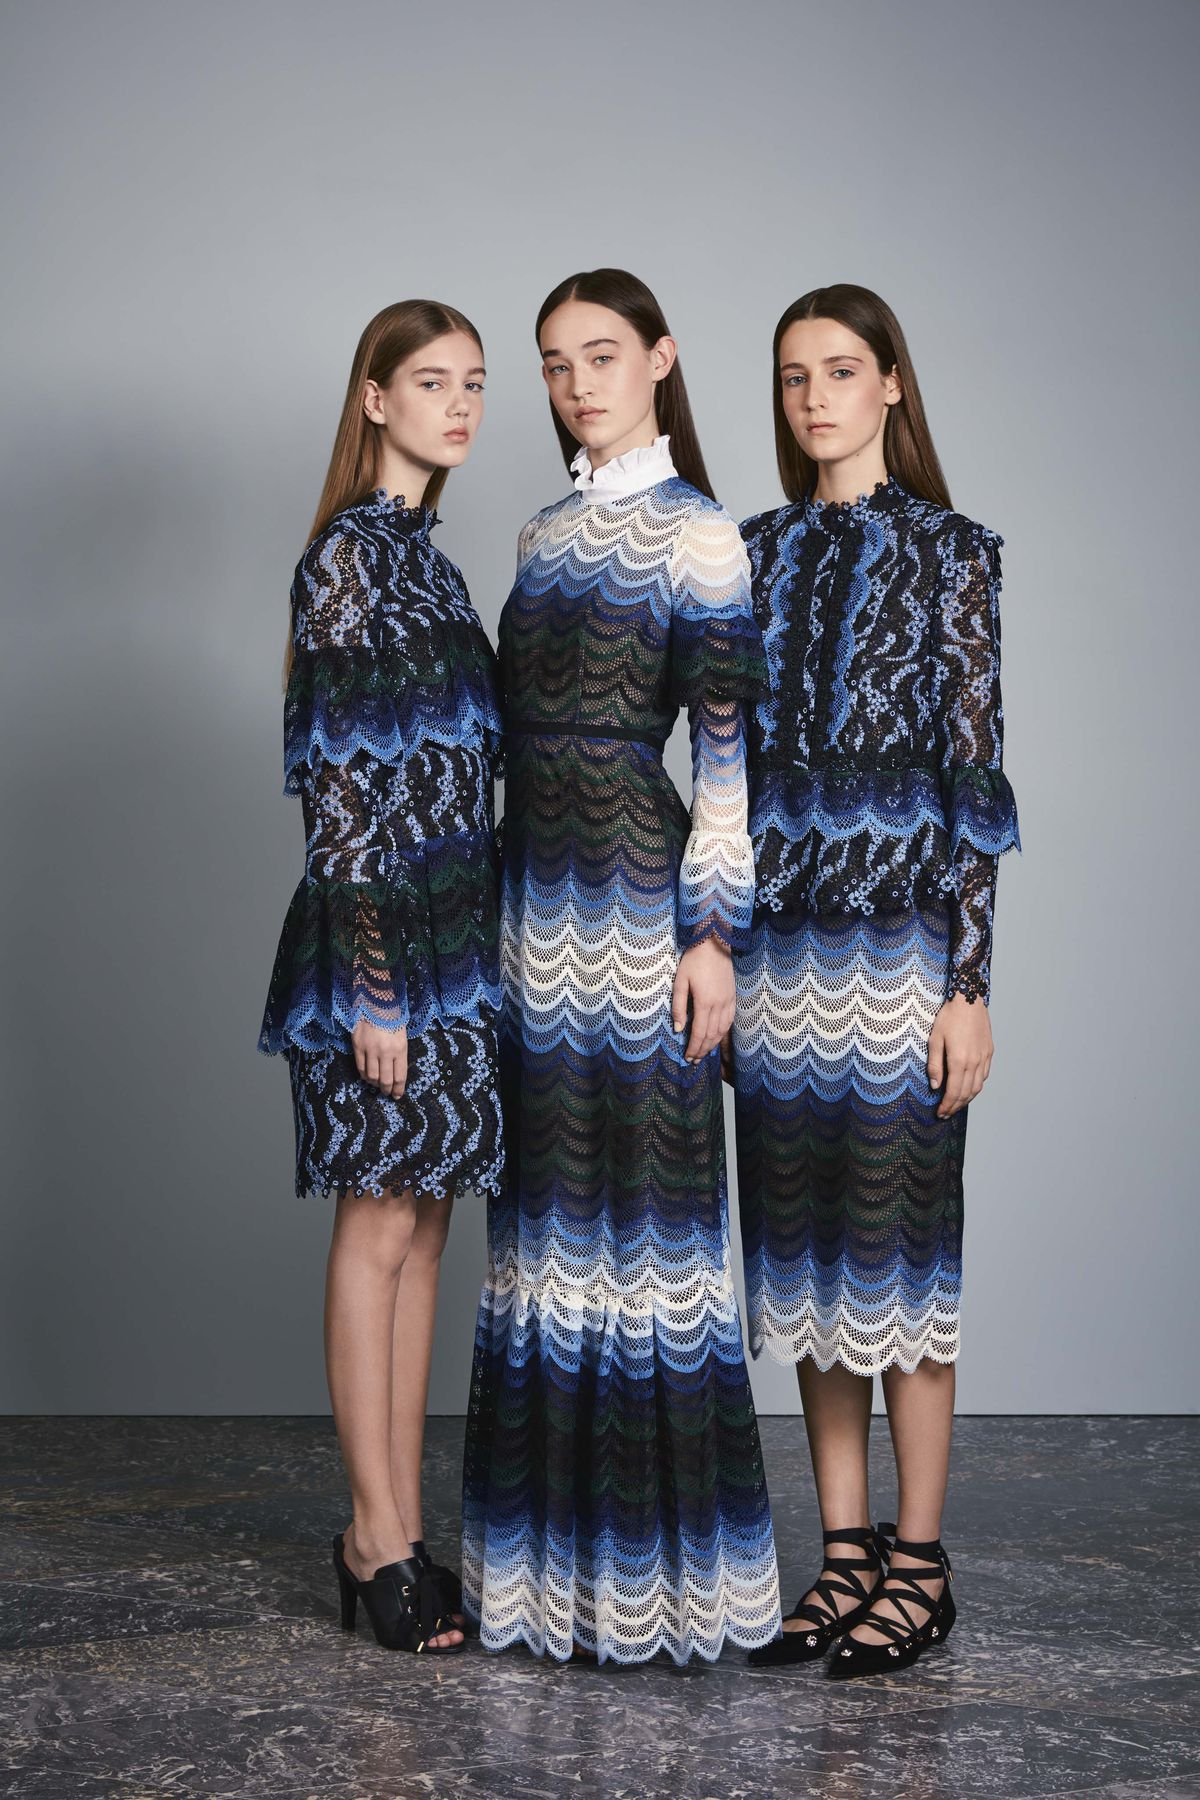 Models wear three blue and white looks, one with a high ruffled collar, in Erdem's resort 2017 lookbook.